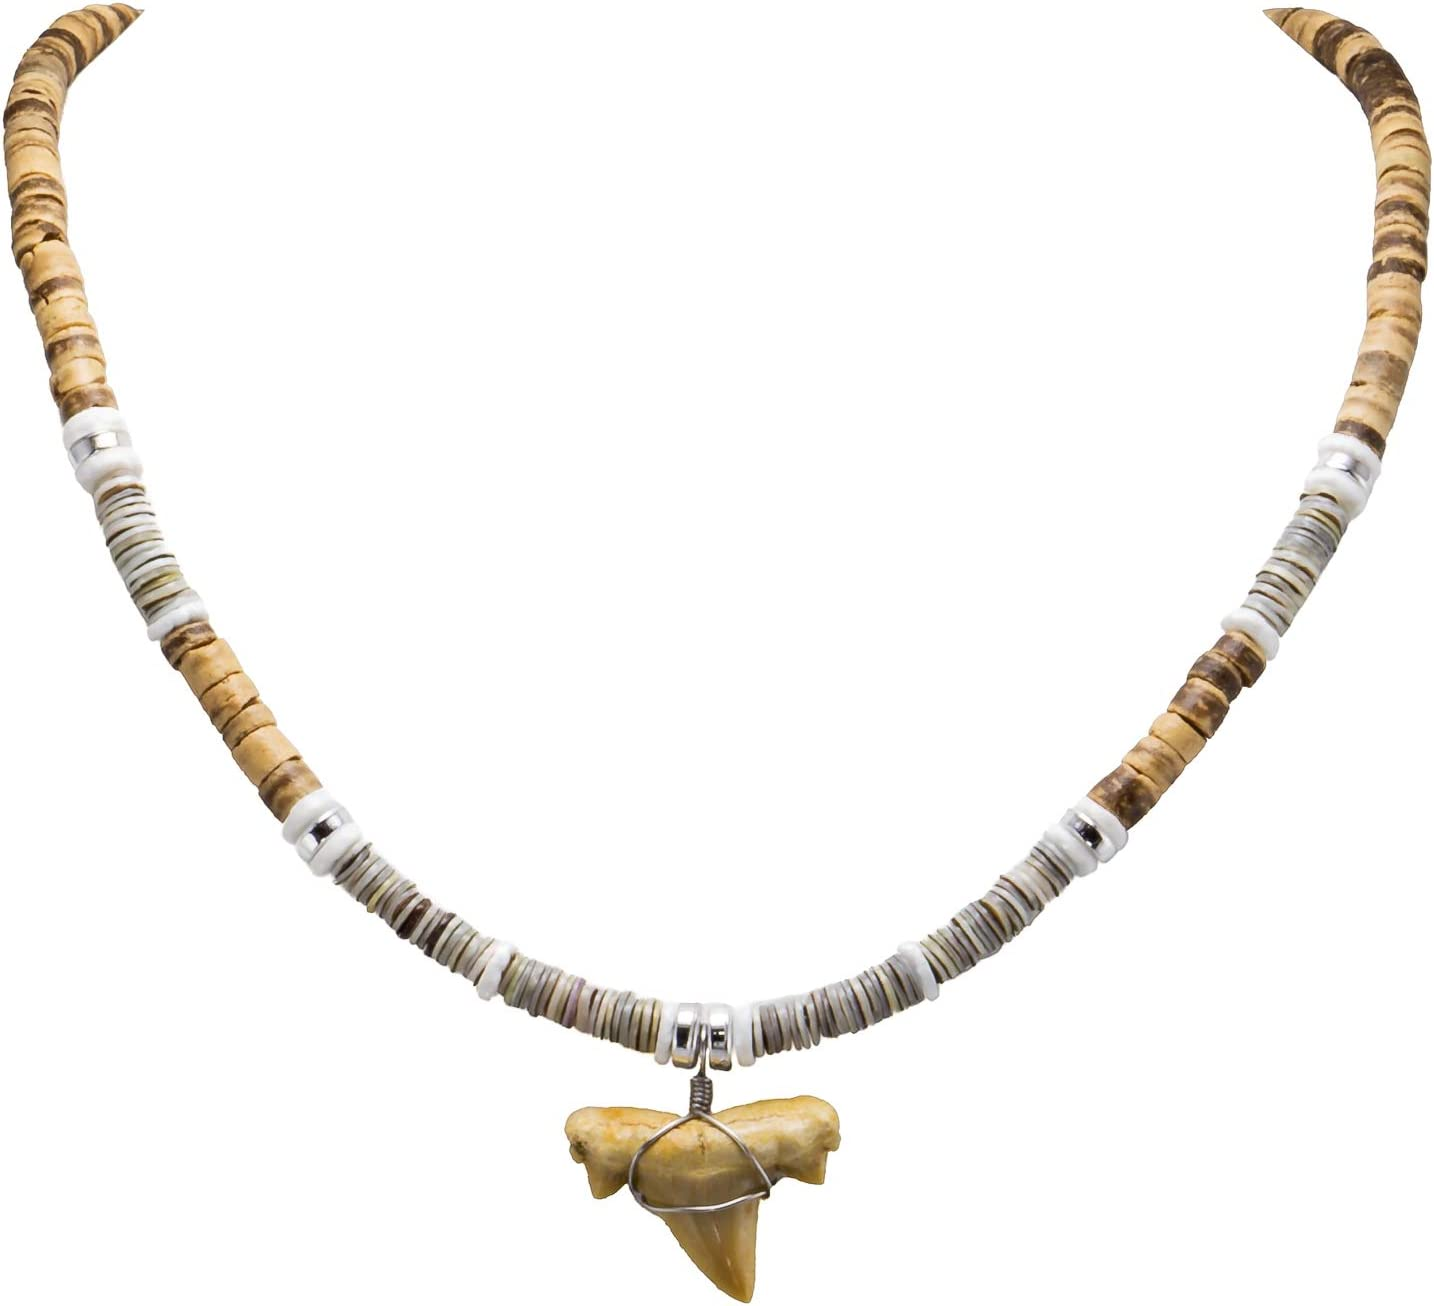 BlueRica Shark Tooth Pendant on Tiger Coconut Beads, Grey Heishi and Puka Shell Beads Necklace (2S)